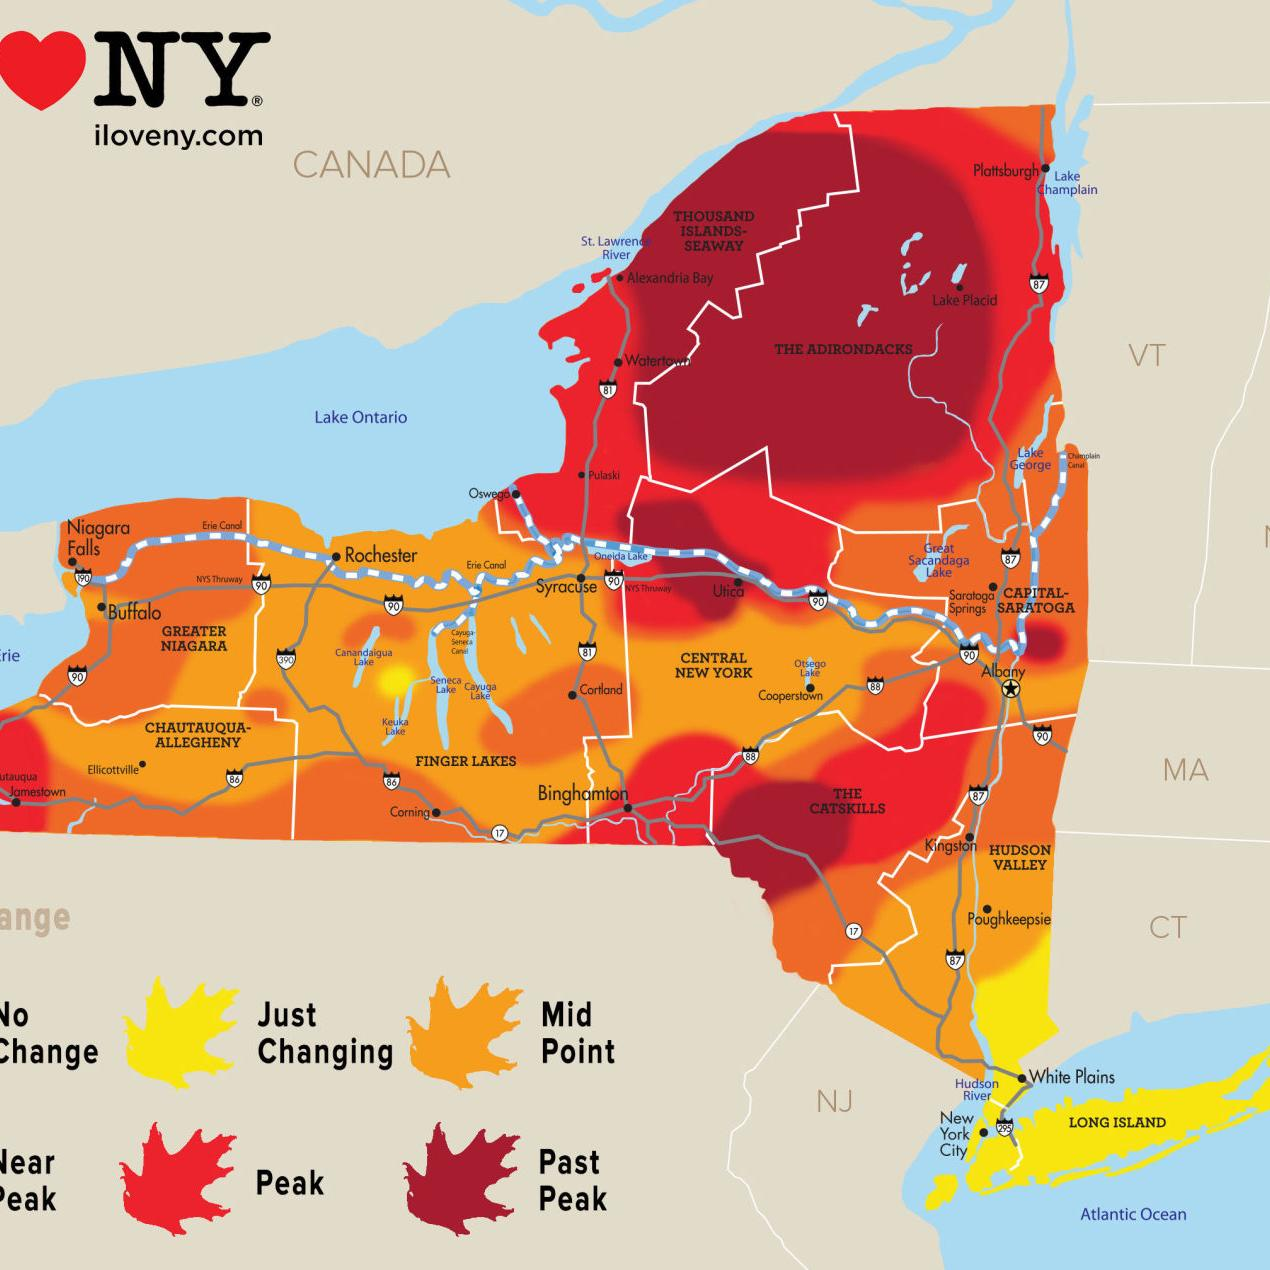 Foliage Map New York 2017.New York State Fall Foliage Report For Week Of Oct 17